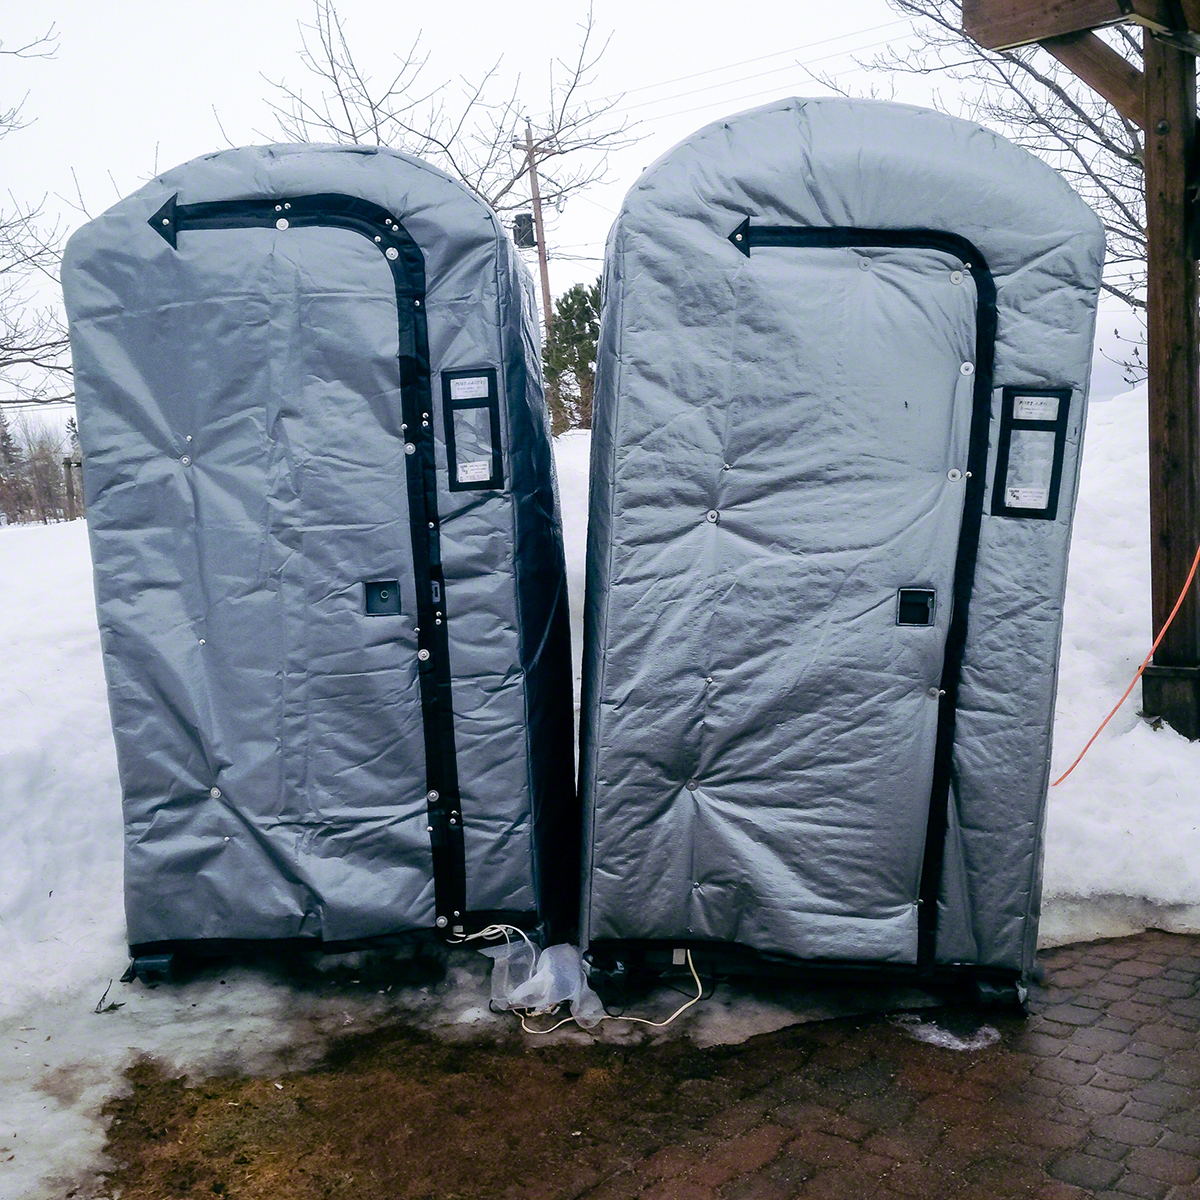 Heated outhouse - Canadian style